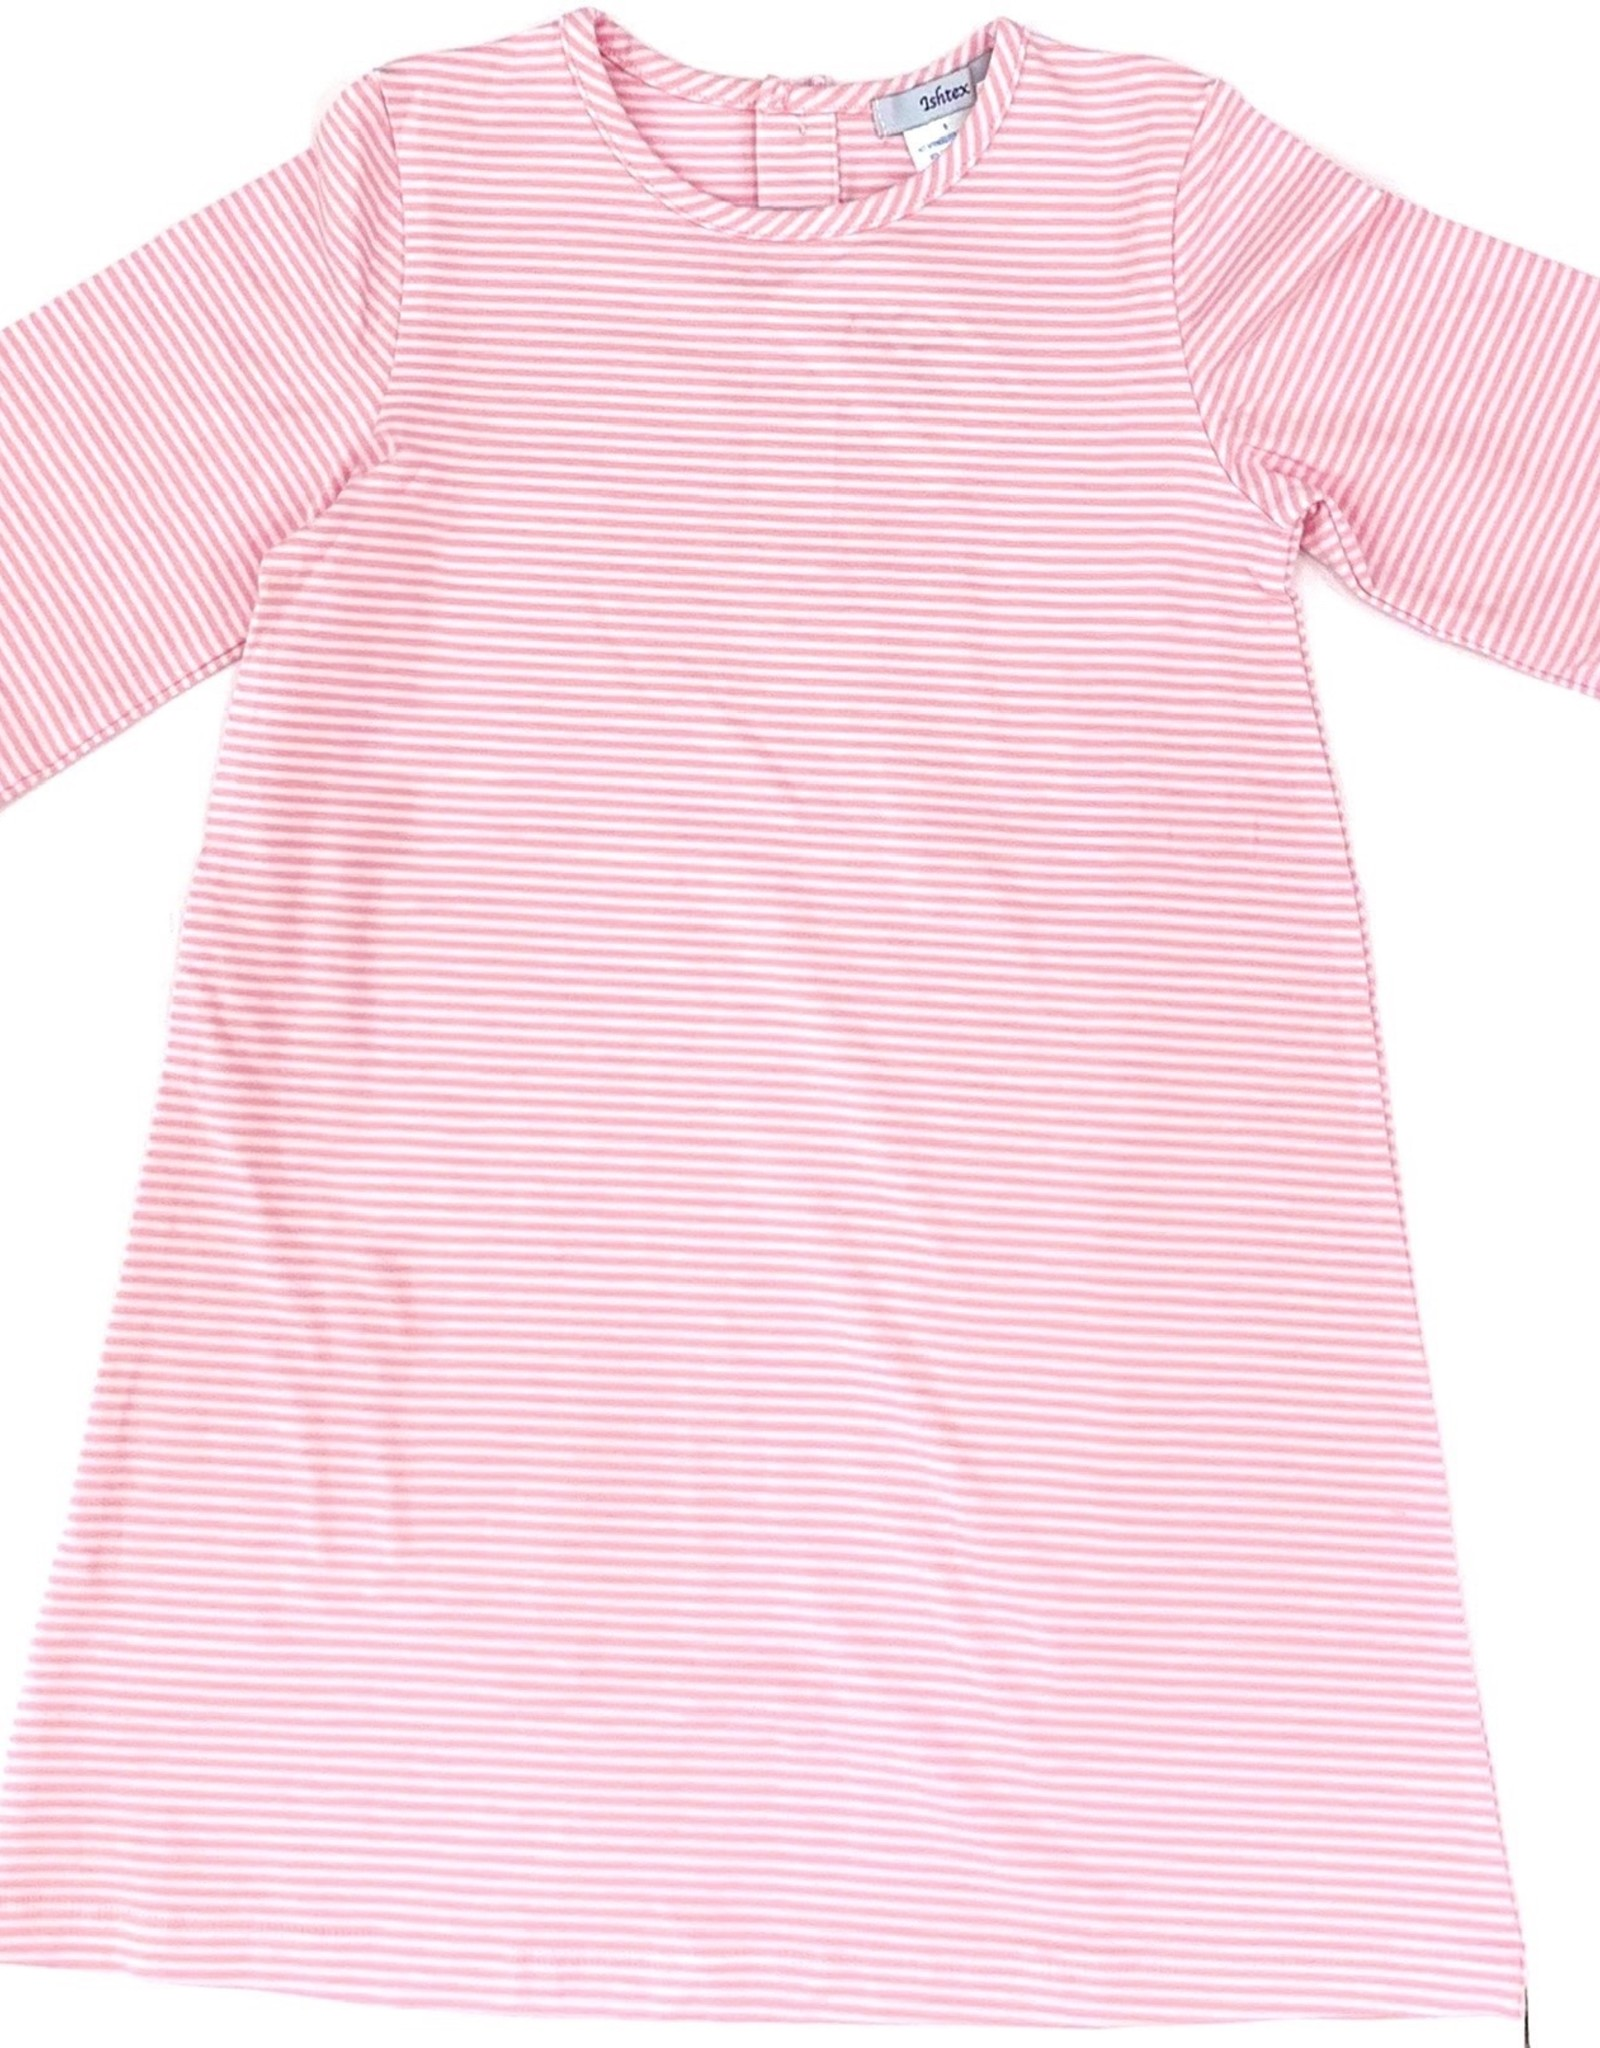 Ishtex Pink And White Stripe A-Line Dress